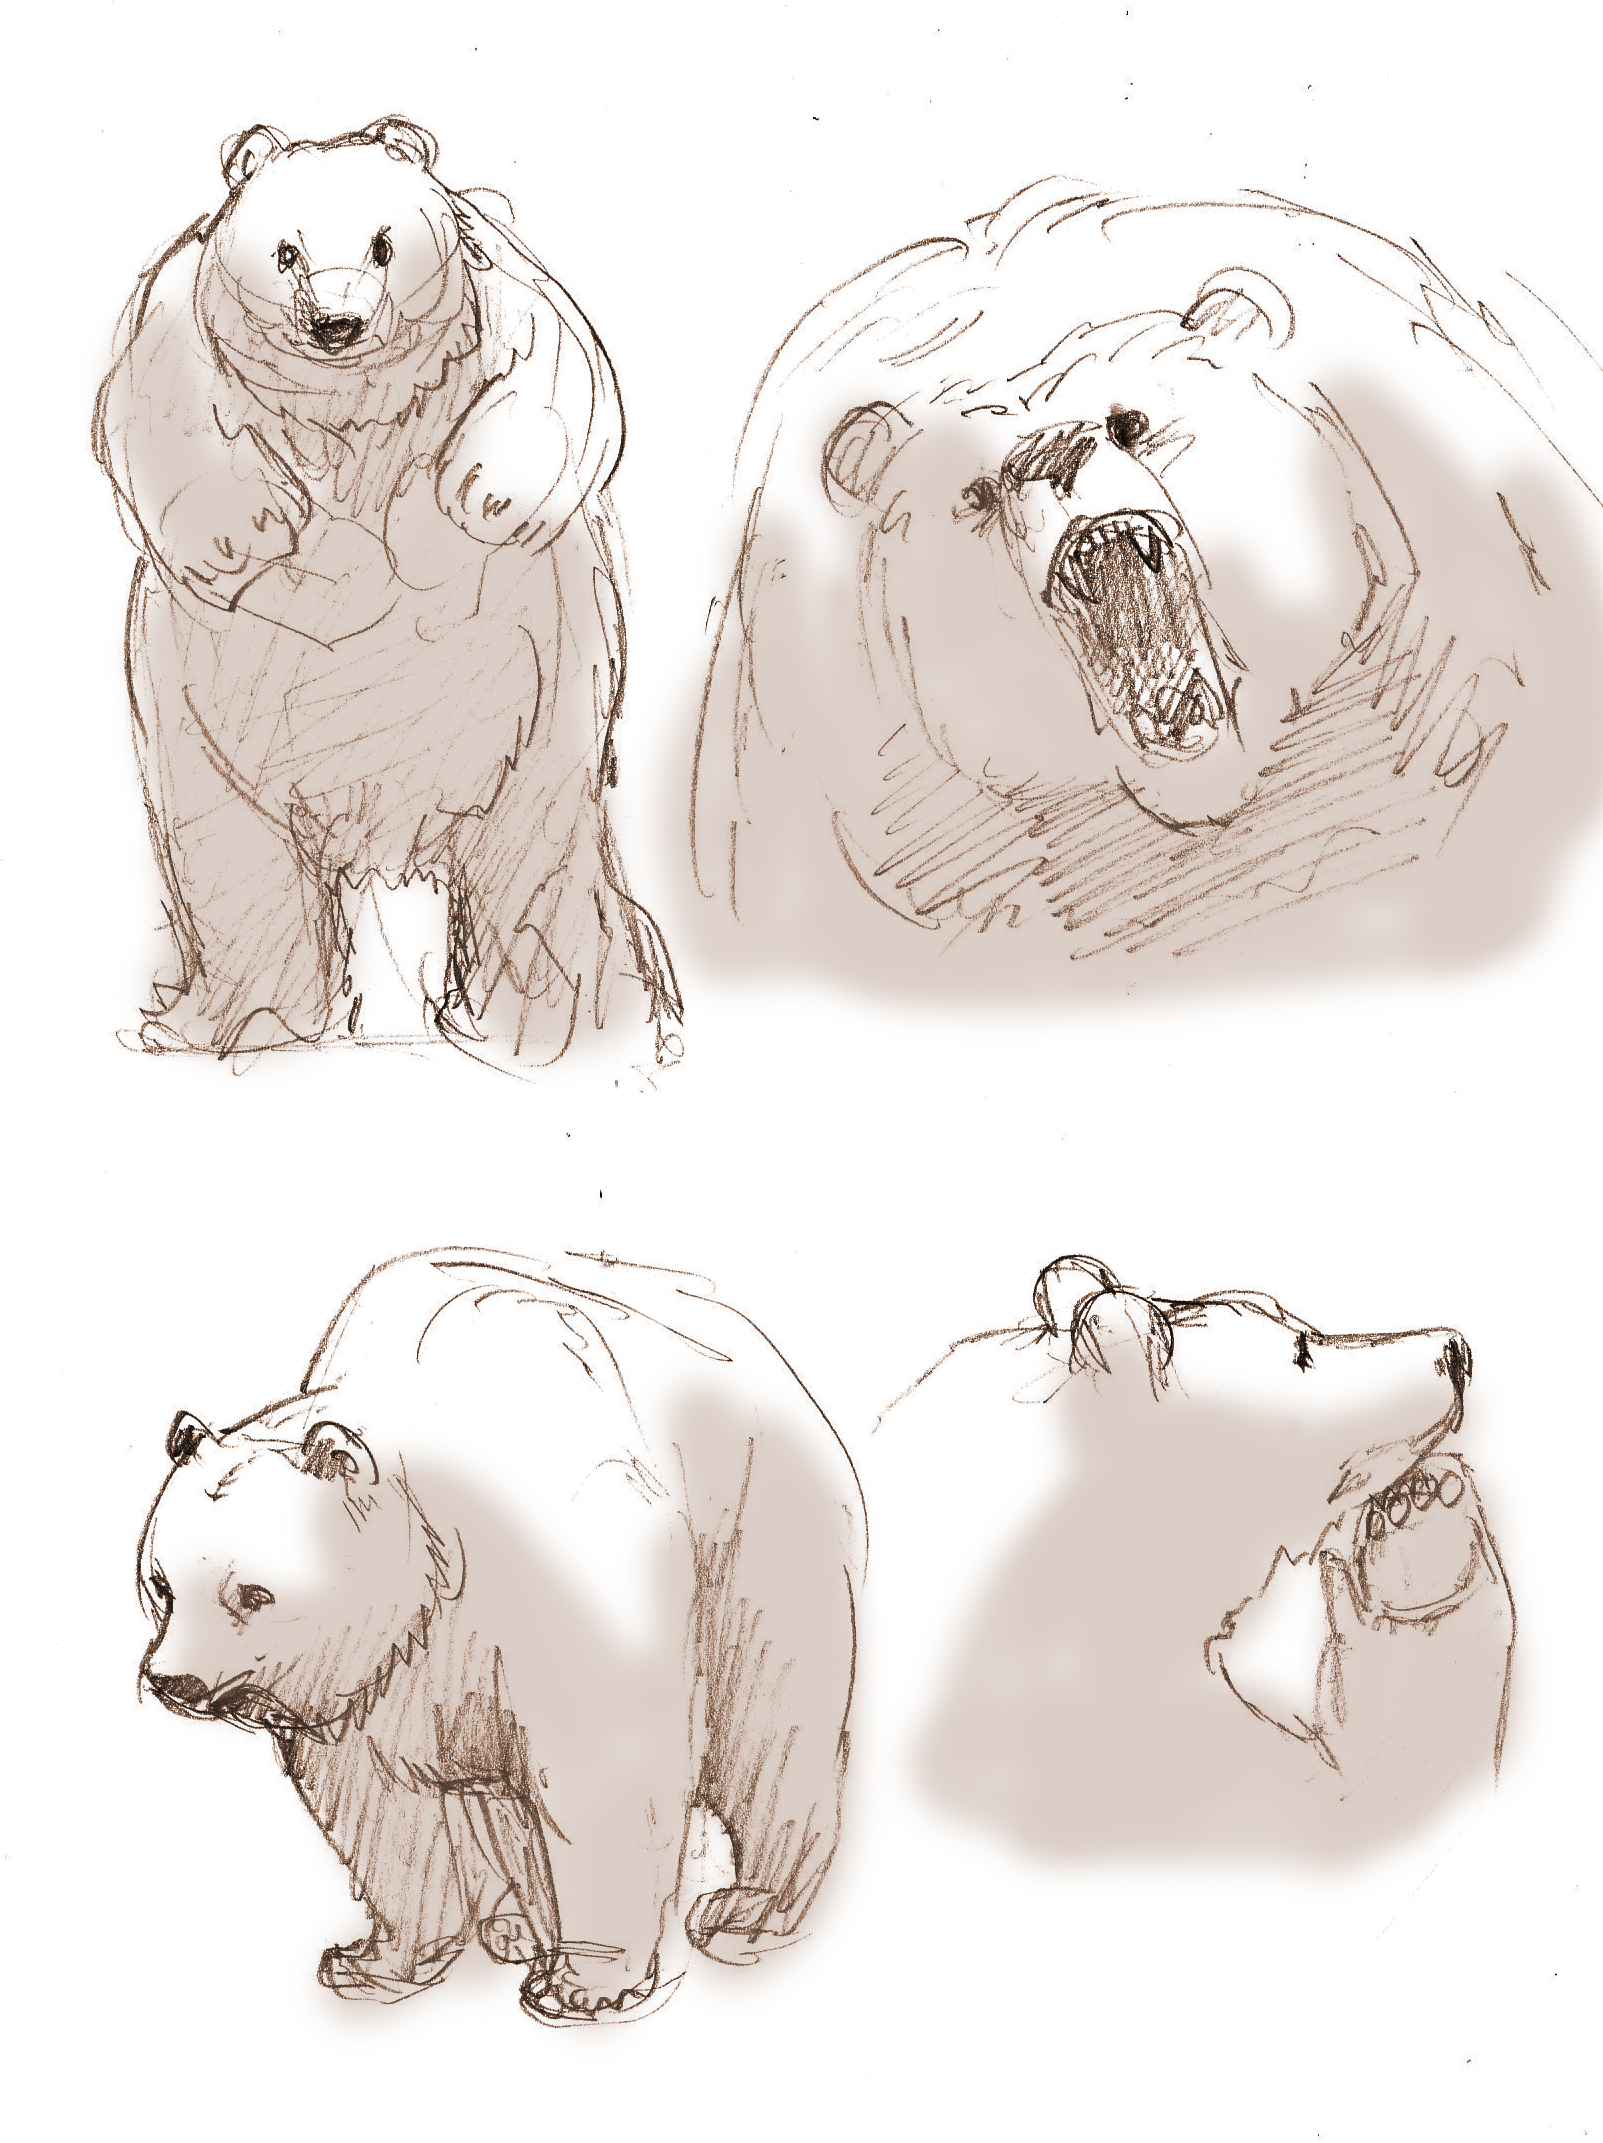 an original prequel to the tempest russ has written concept art for bruin